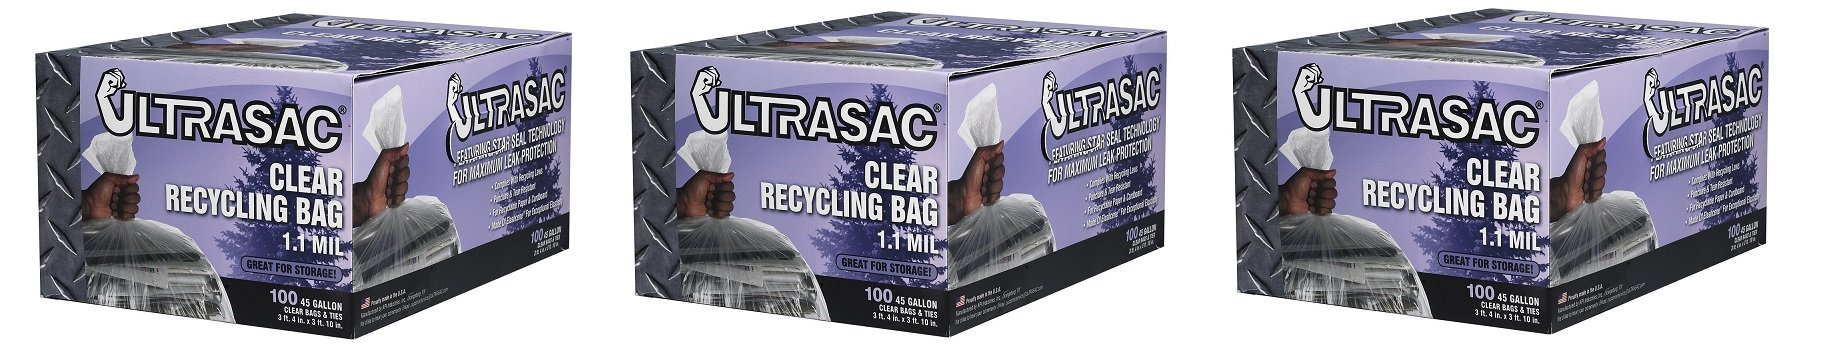 Aluf Plastics 719956 Ultrasac Heavy Duty Professional Quality Recycling Trash Bag, 45 Gallon Capacity, 46'' Length x 40'' Width, Clear (Case of 100) (3-(Case of 100))